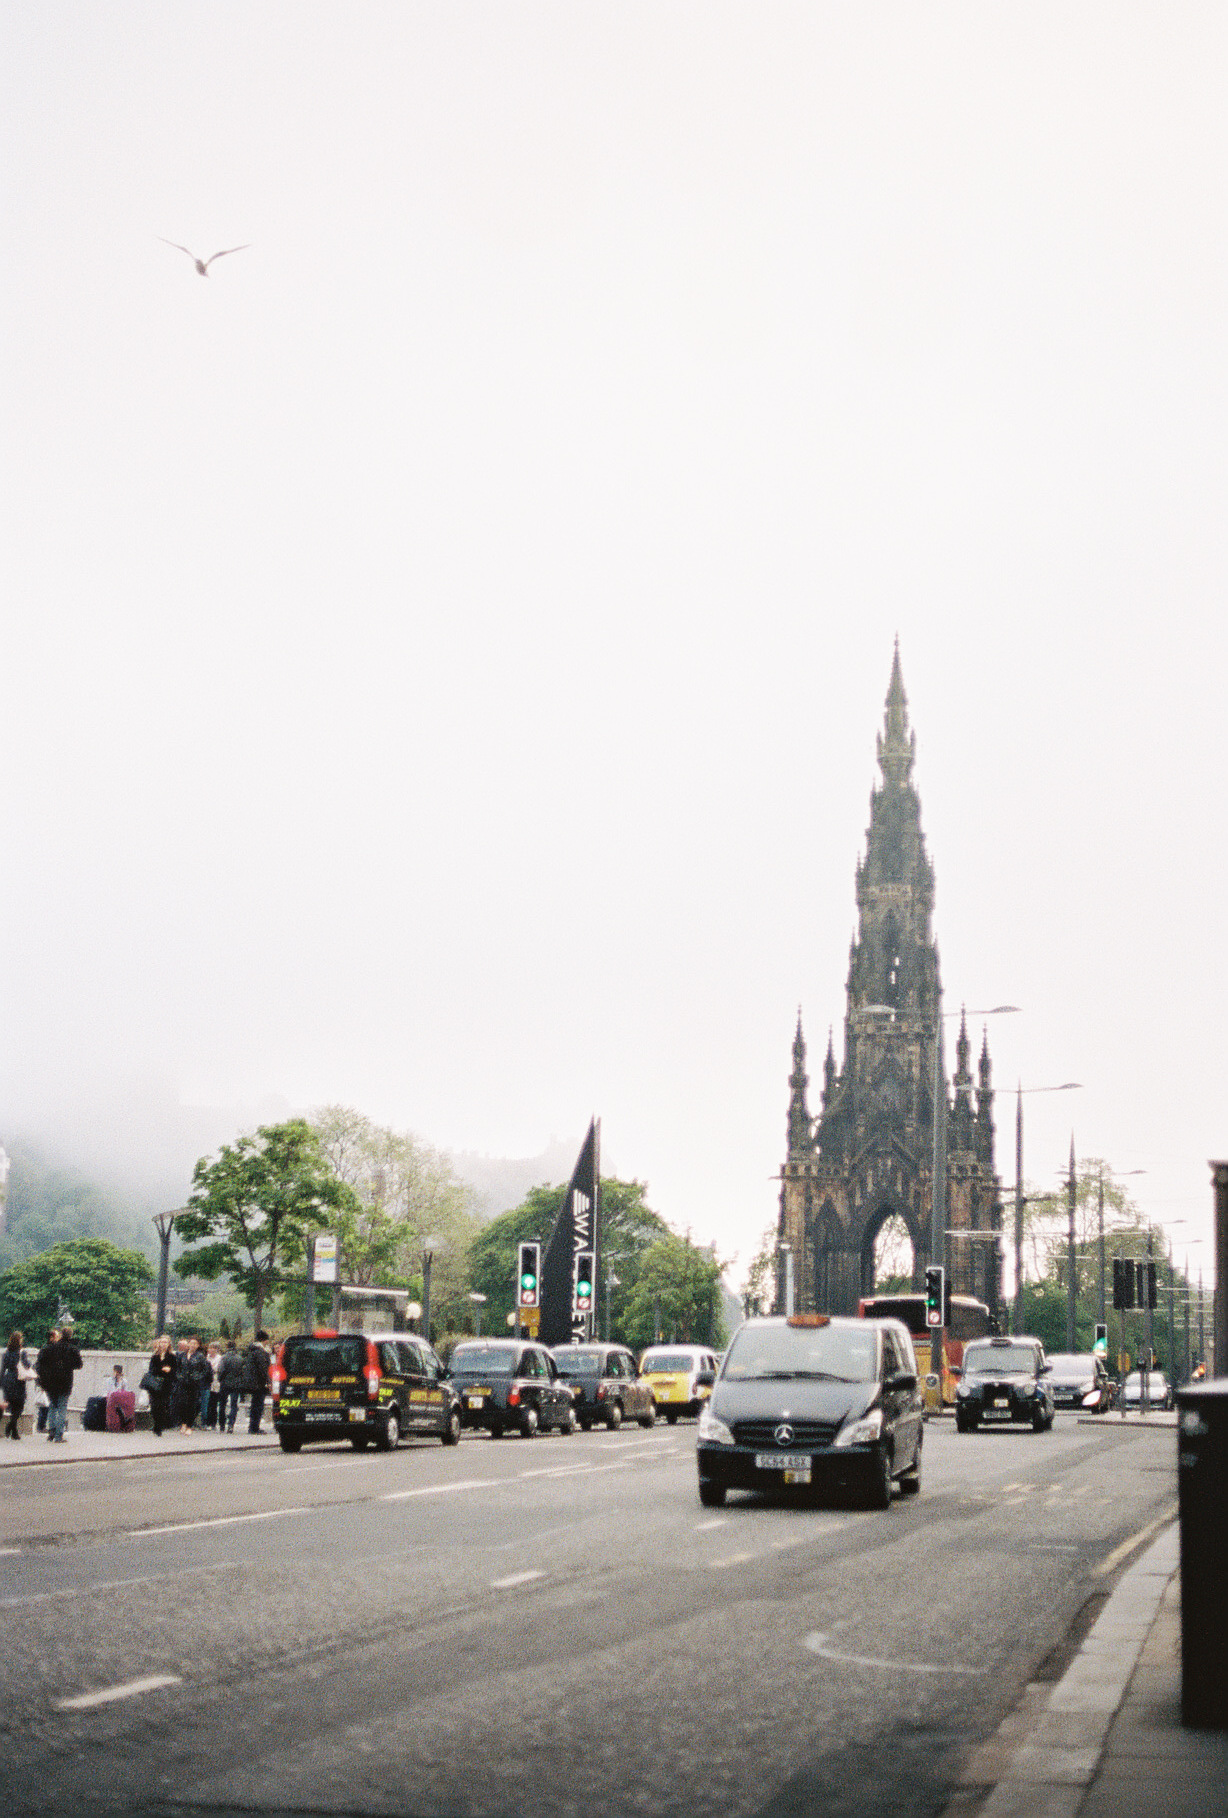 downtown-edinburgh-scotland-european-honeymoon-35mm-film